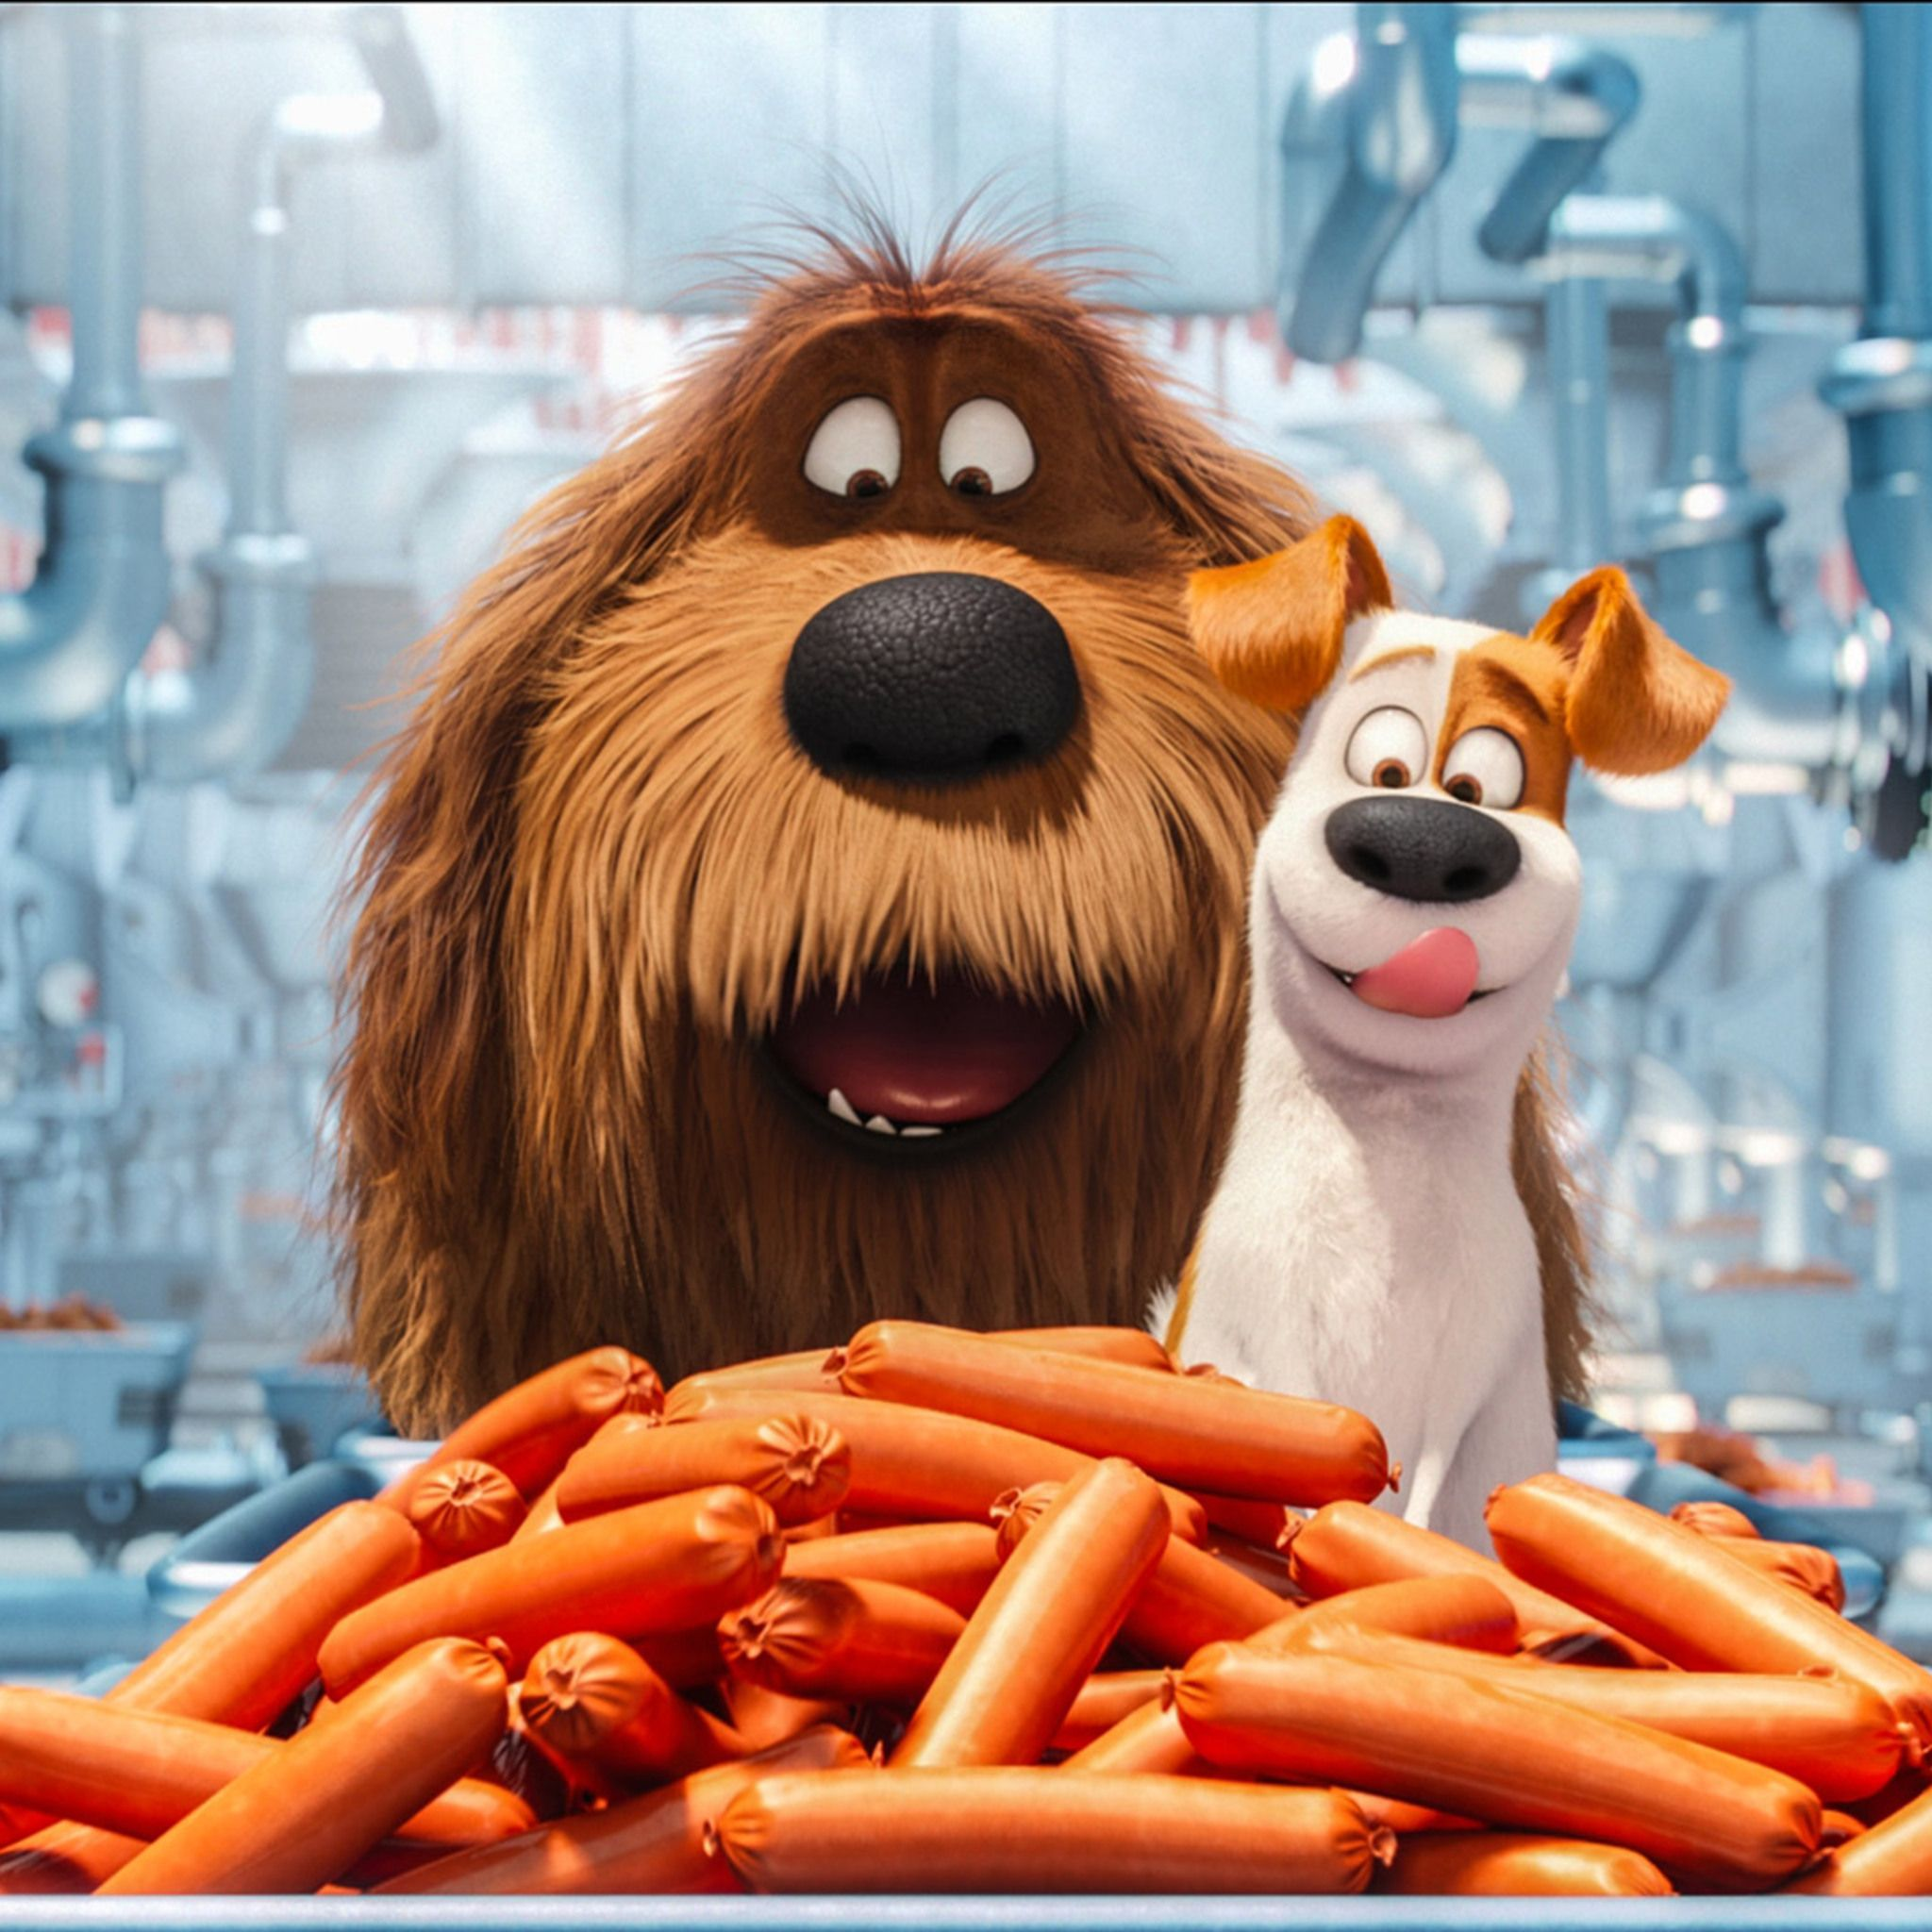 Carrots The Secret Life Of Pets Tap To See More Of The Secret